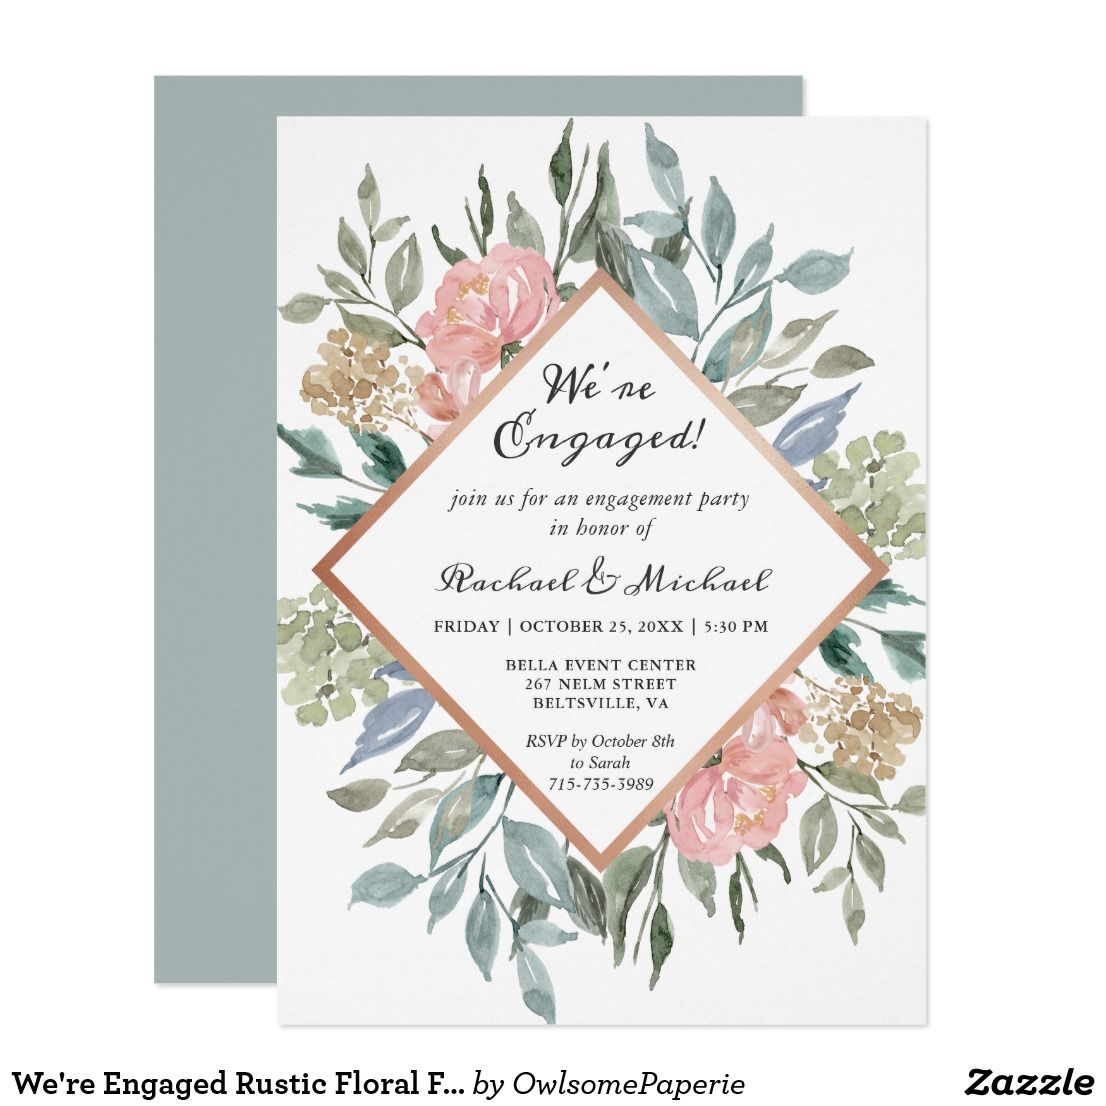 Were Engaged Rustic Floral Frame Engagement Party Invitation